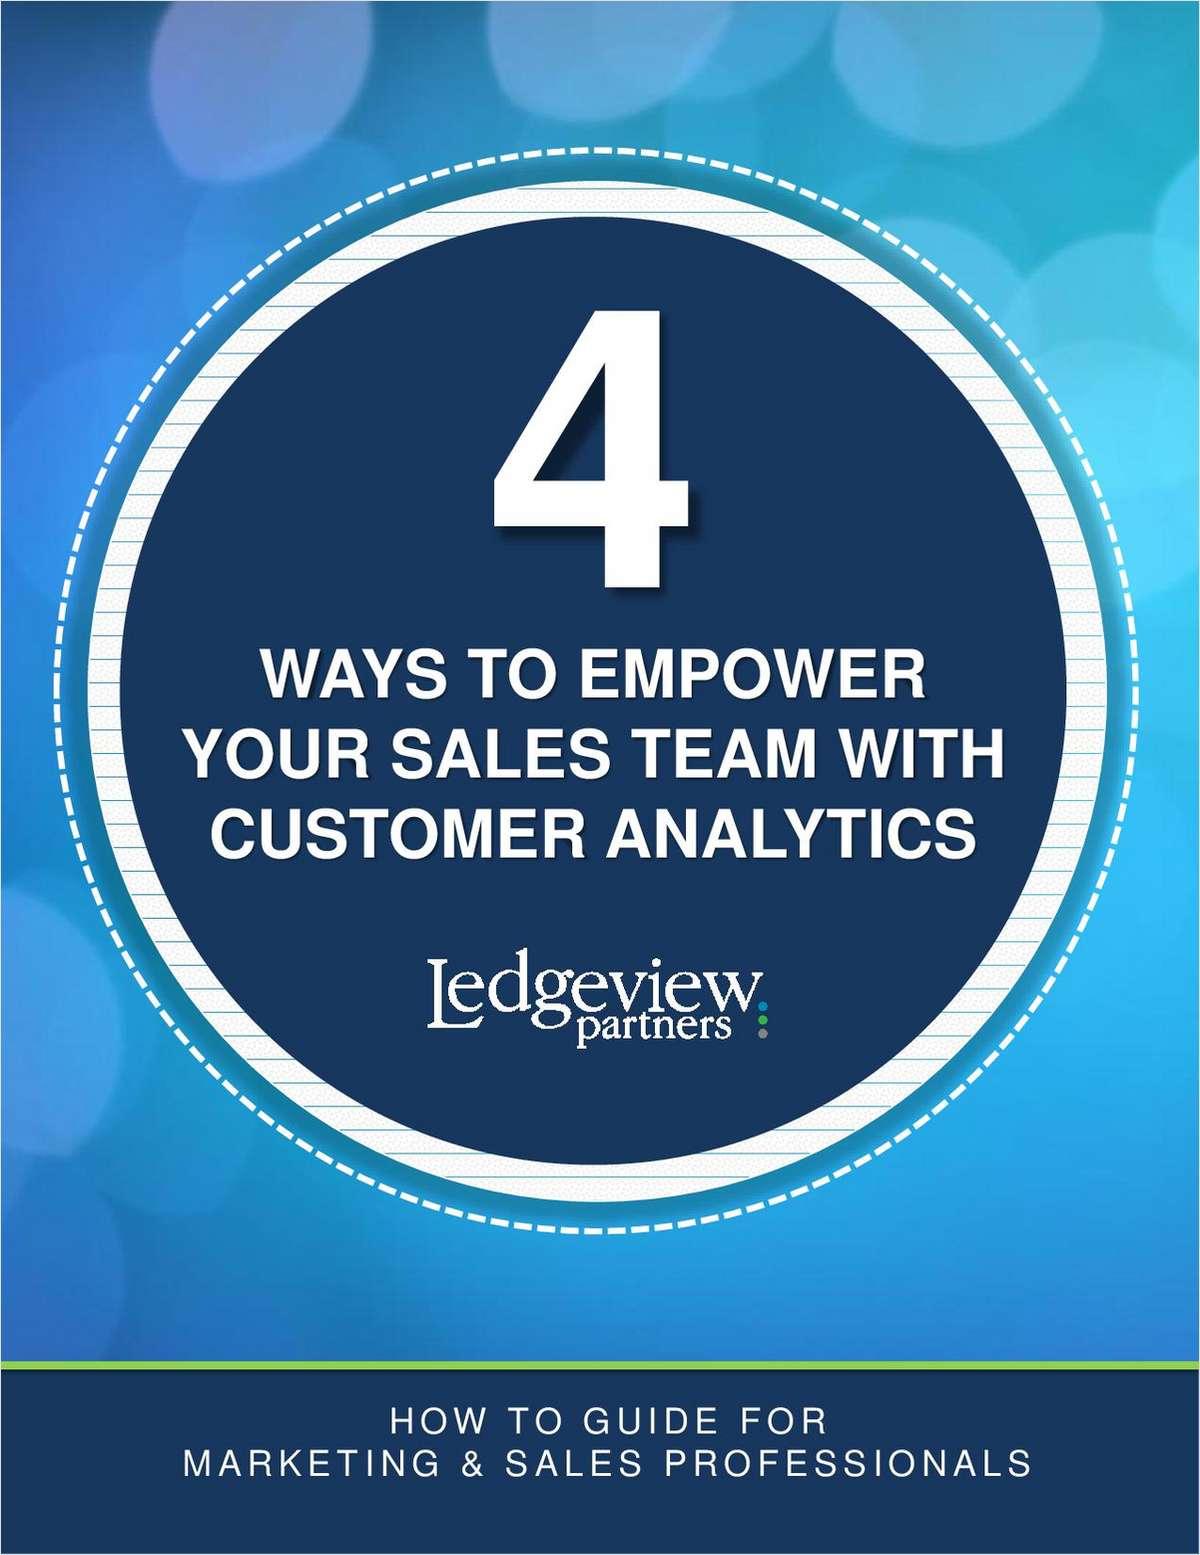 4 Ways to Empower Your Sales Team with Customer Analytics